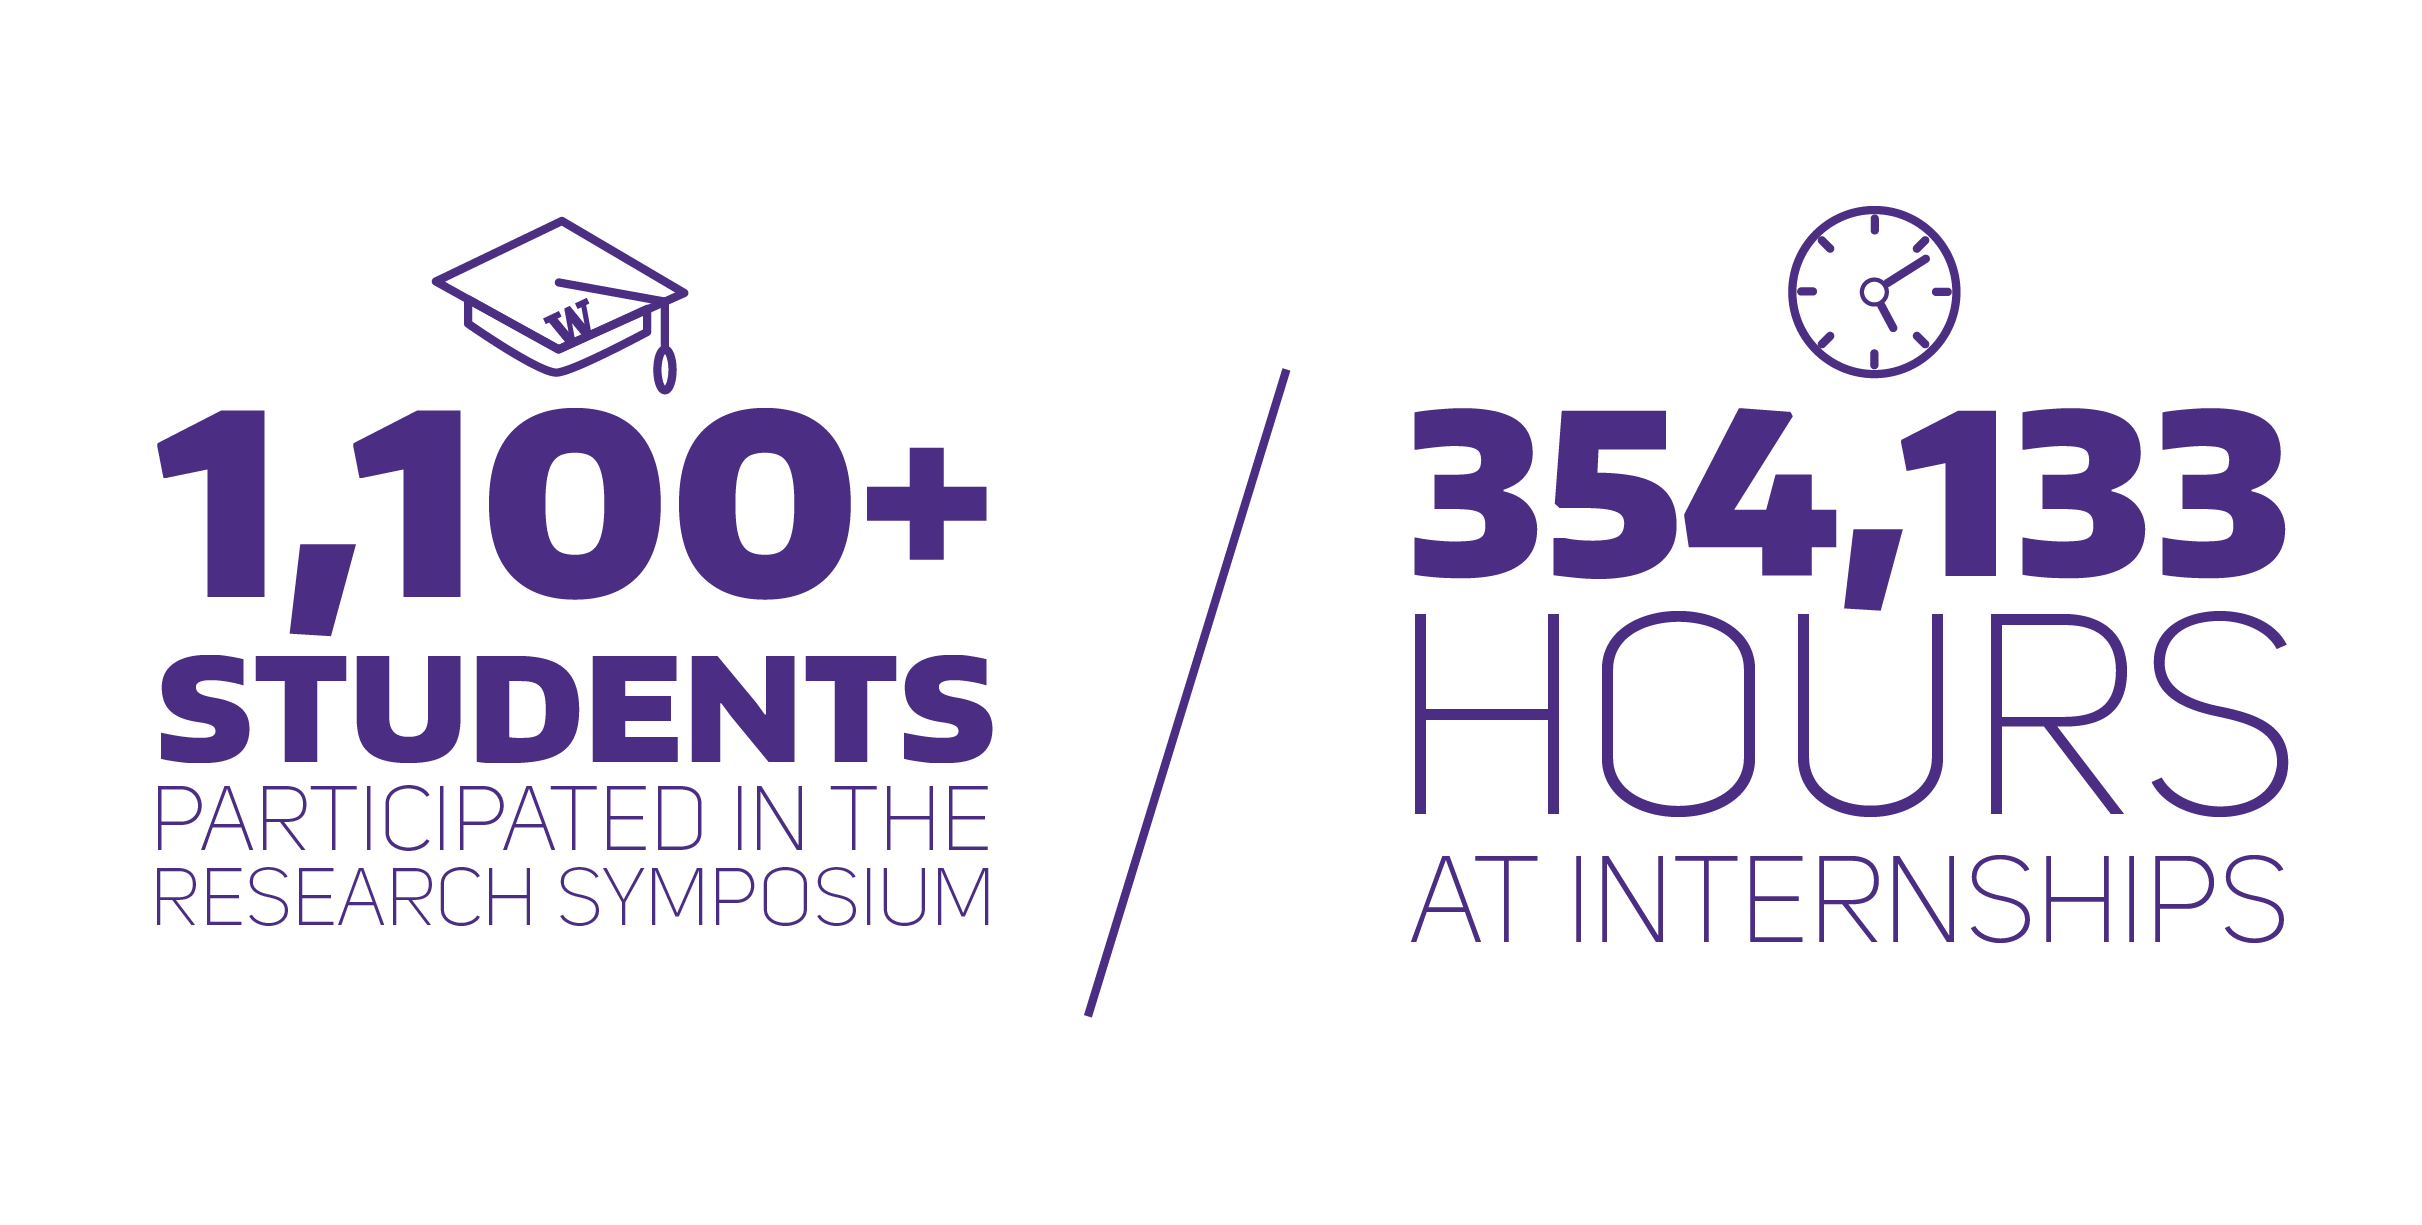 Research Symposium 1,100+ studentsInternships354,133 hours